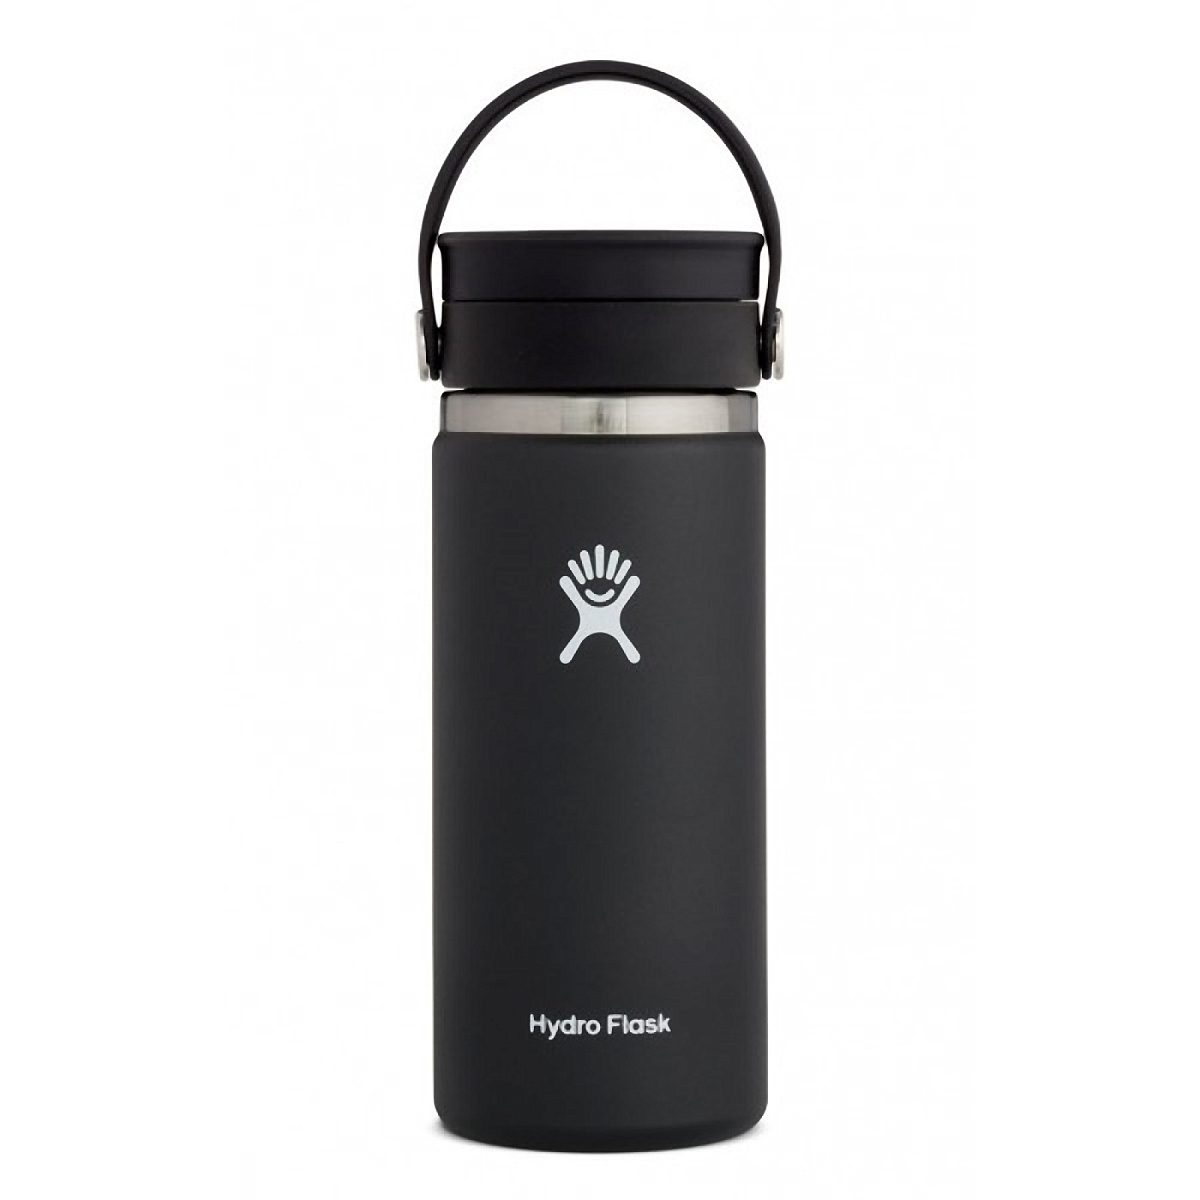 Hydro Flask 16 oz Coffee with Flex Sip Lid - Color: Black Size: One Size, Black, large, image 1